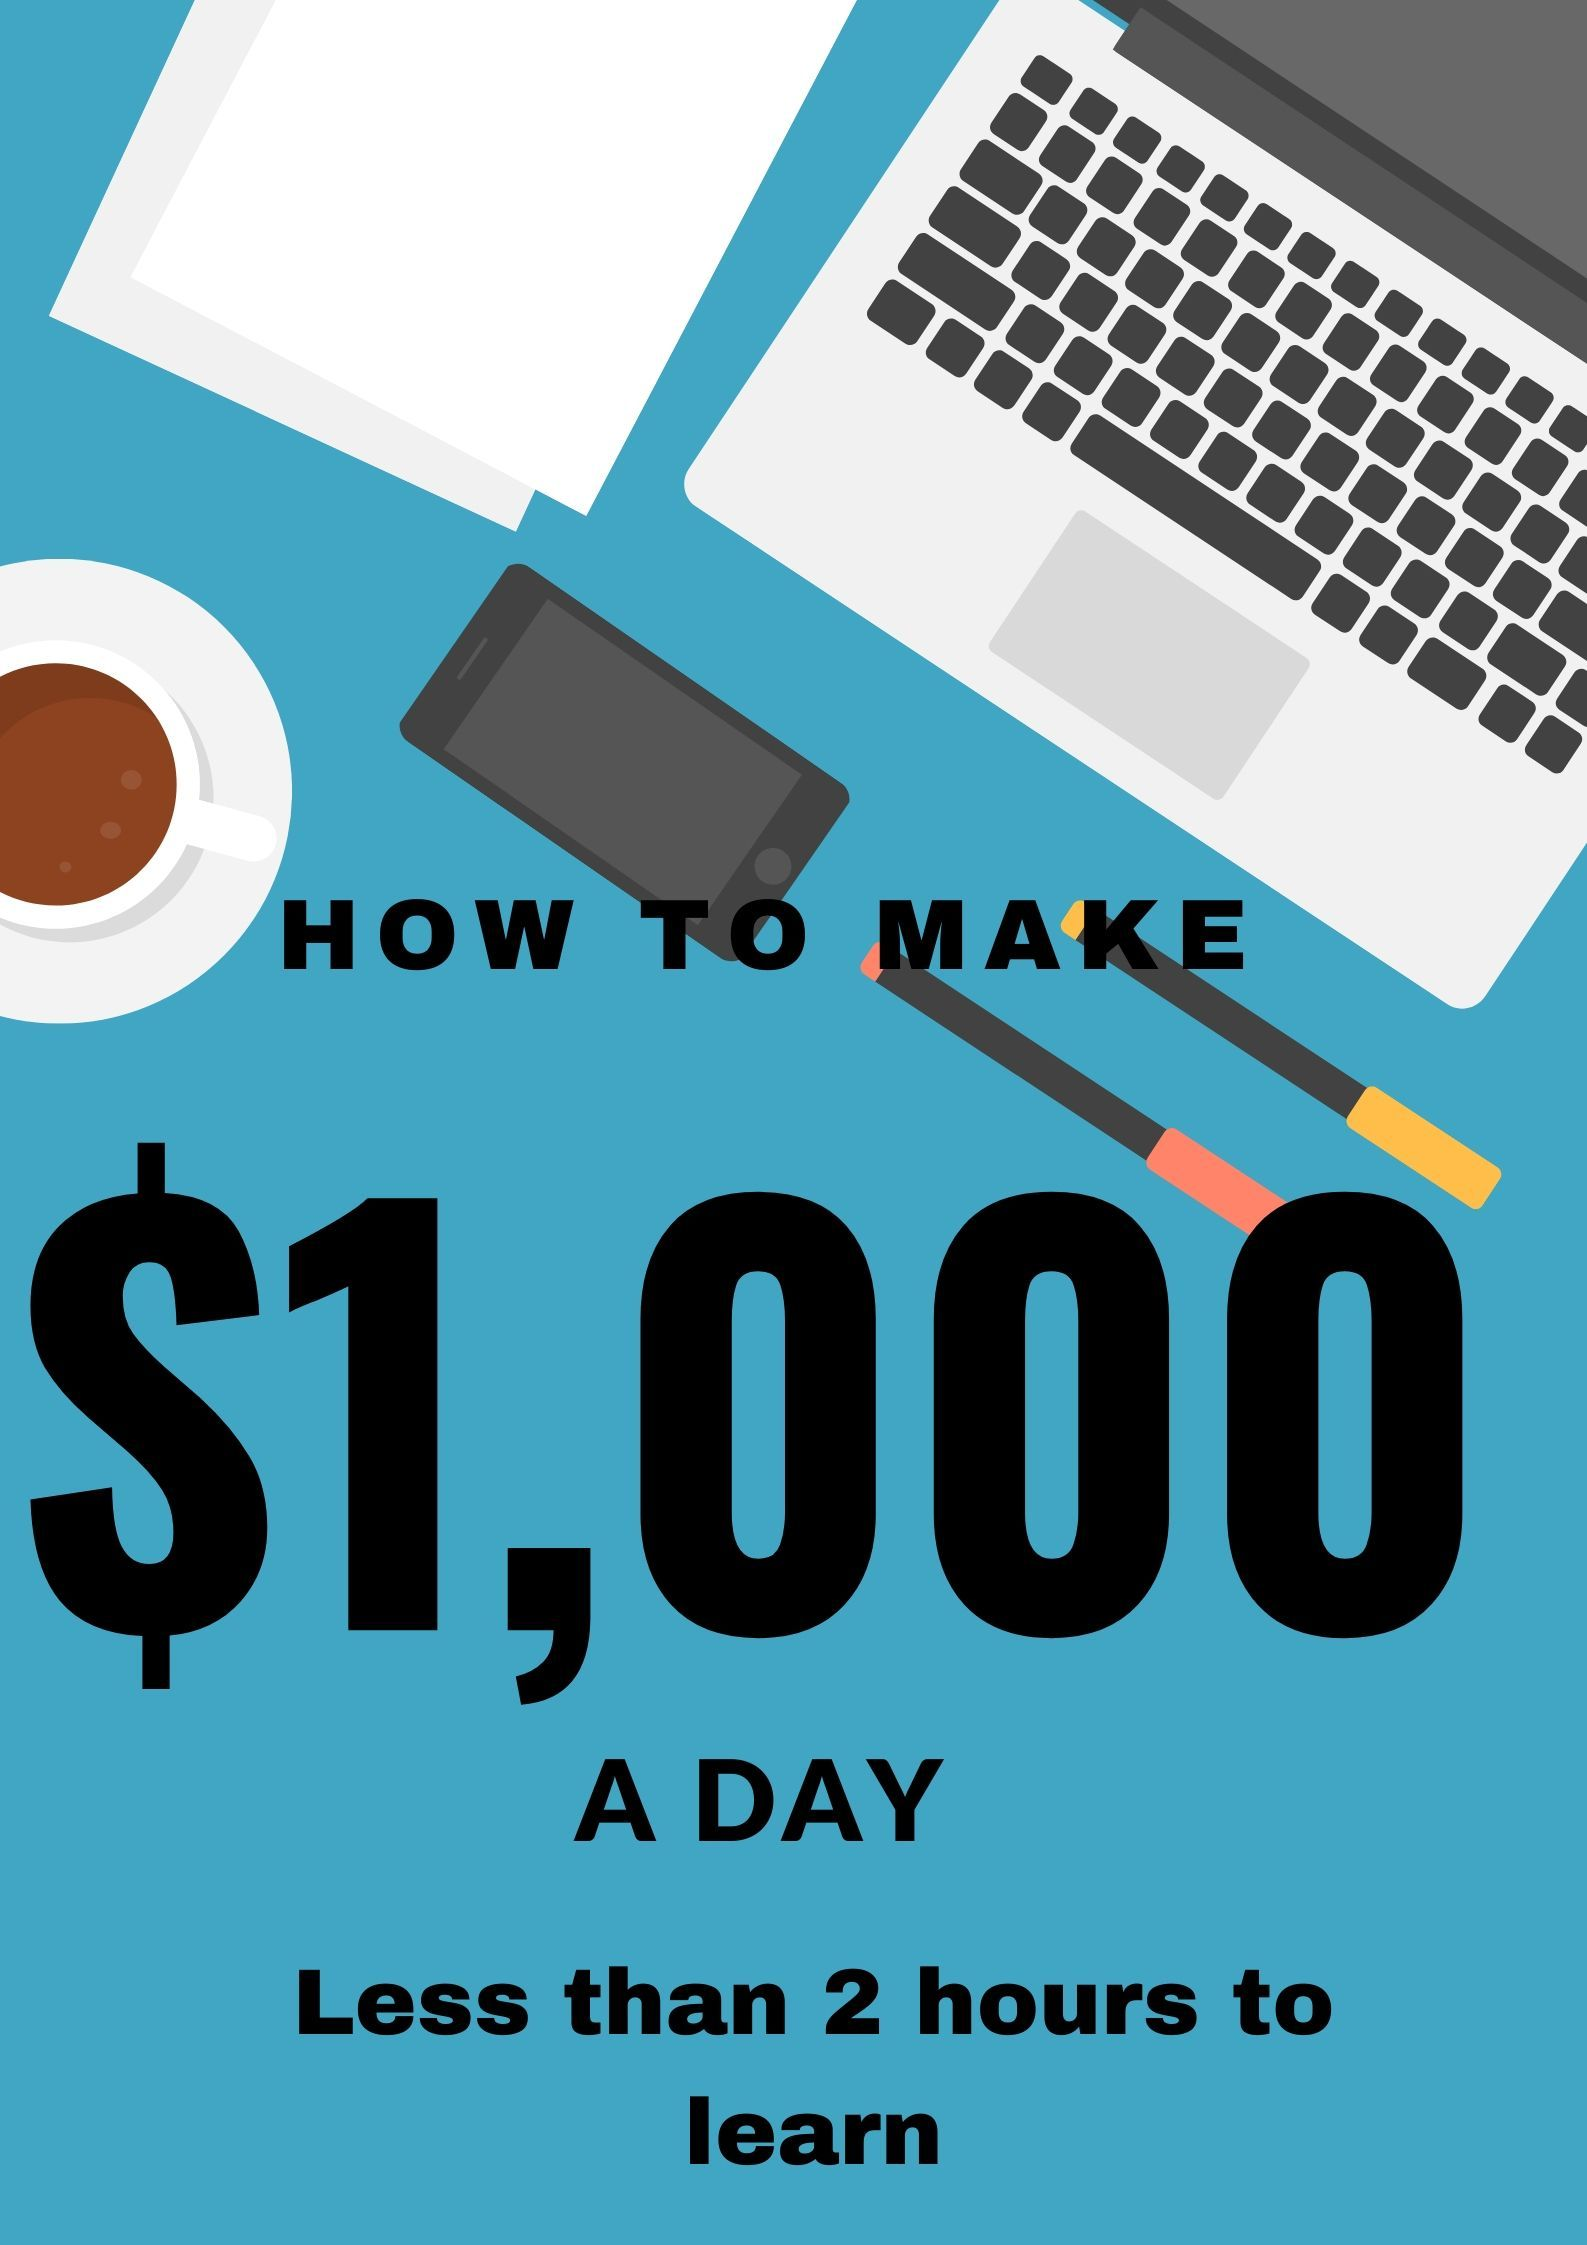 Pin on How to make 1,000 a day